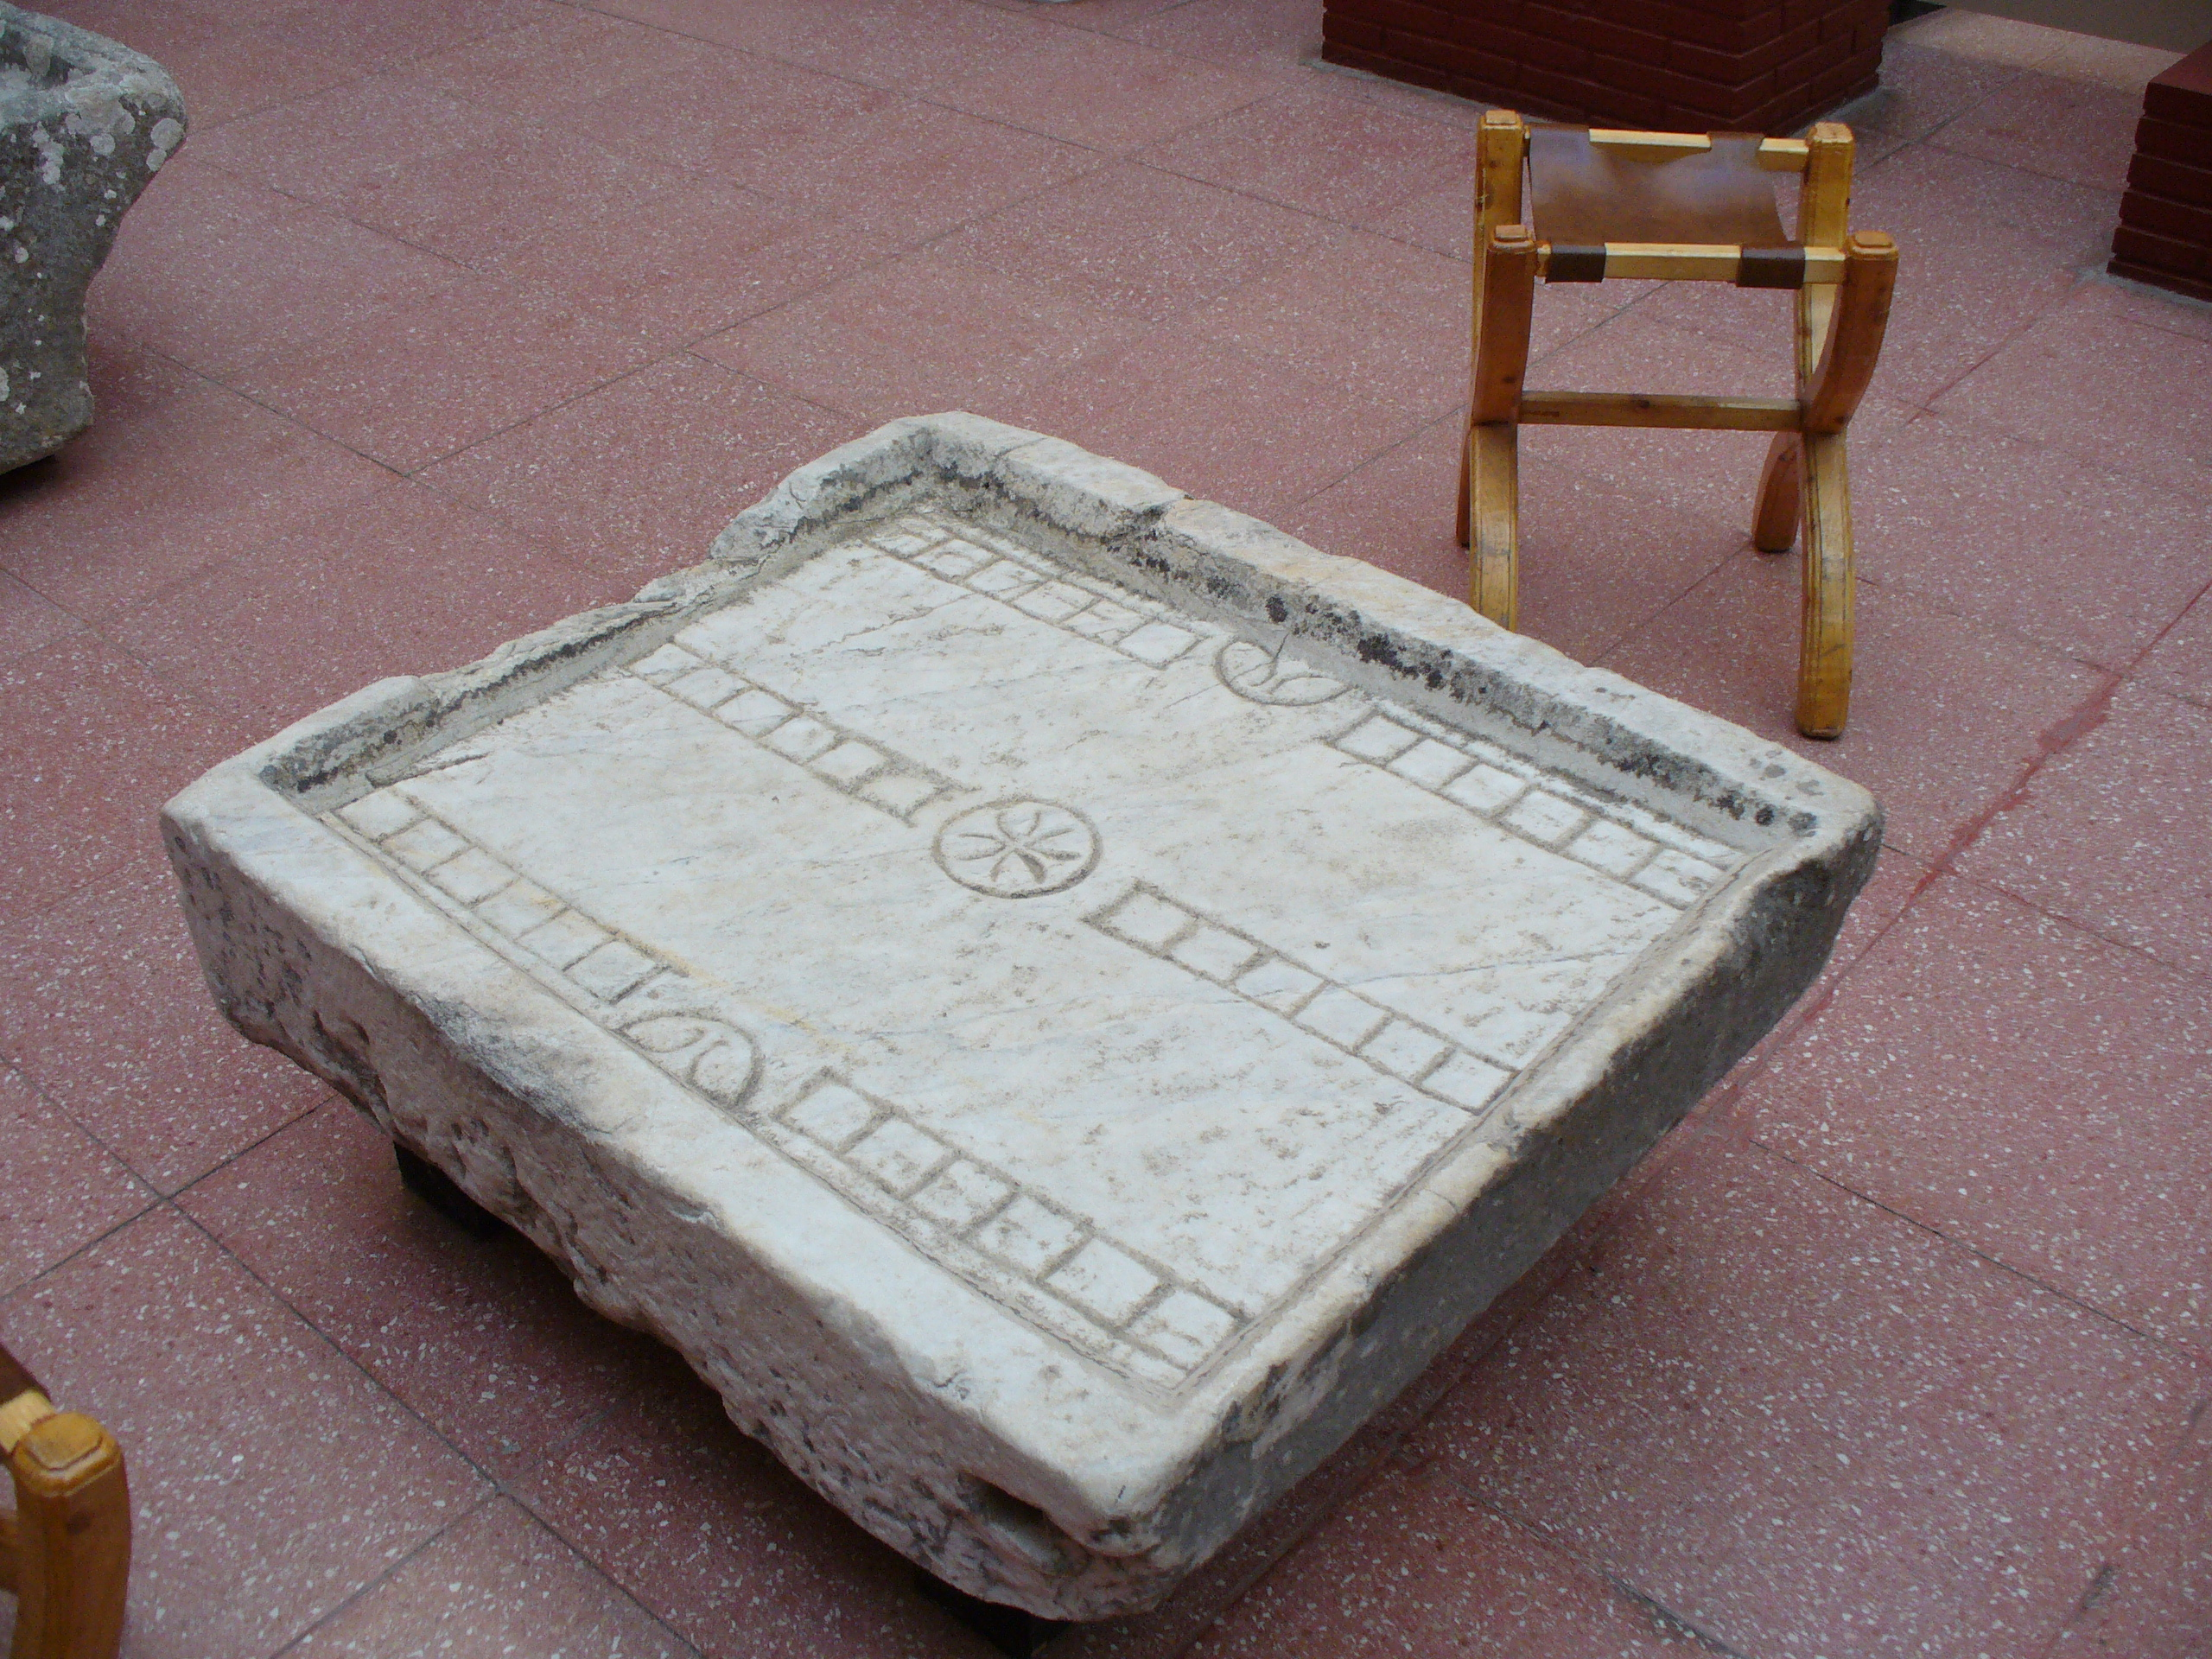 Duodecim Scripta. 100 BCE. Ephesus Museum, Turkey. Photo: December 12, 2006.